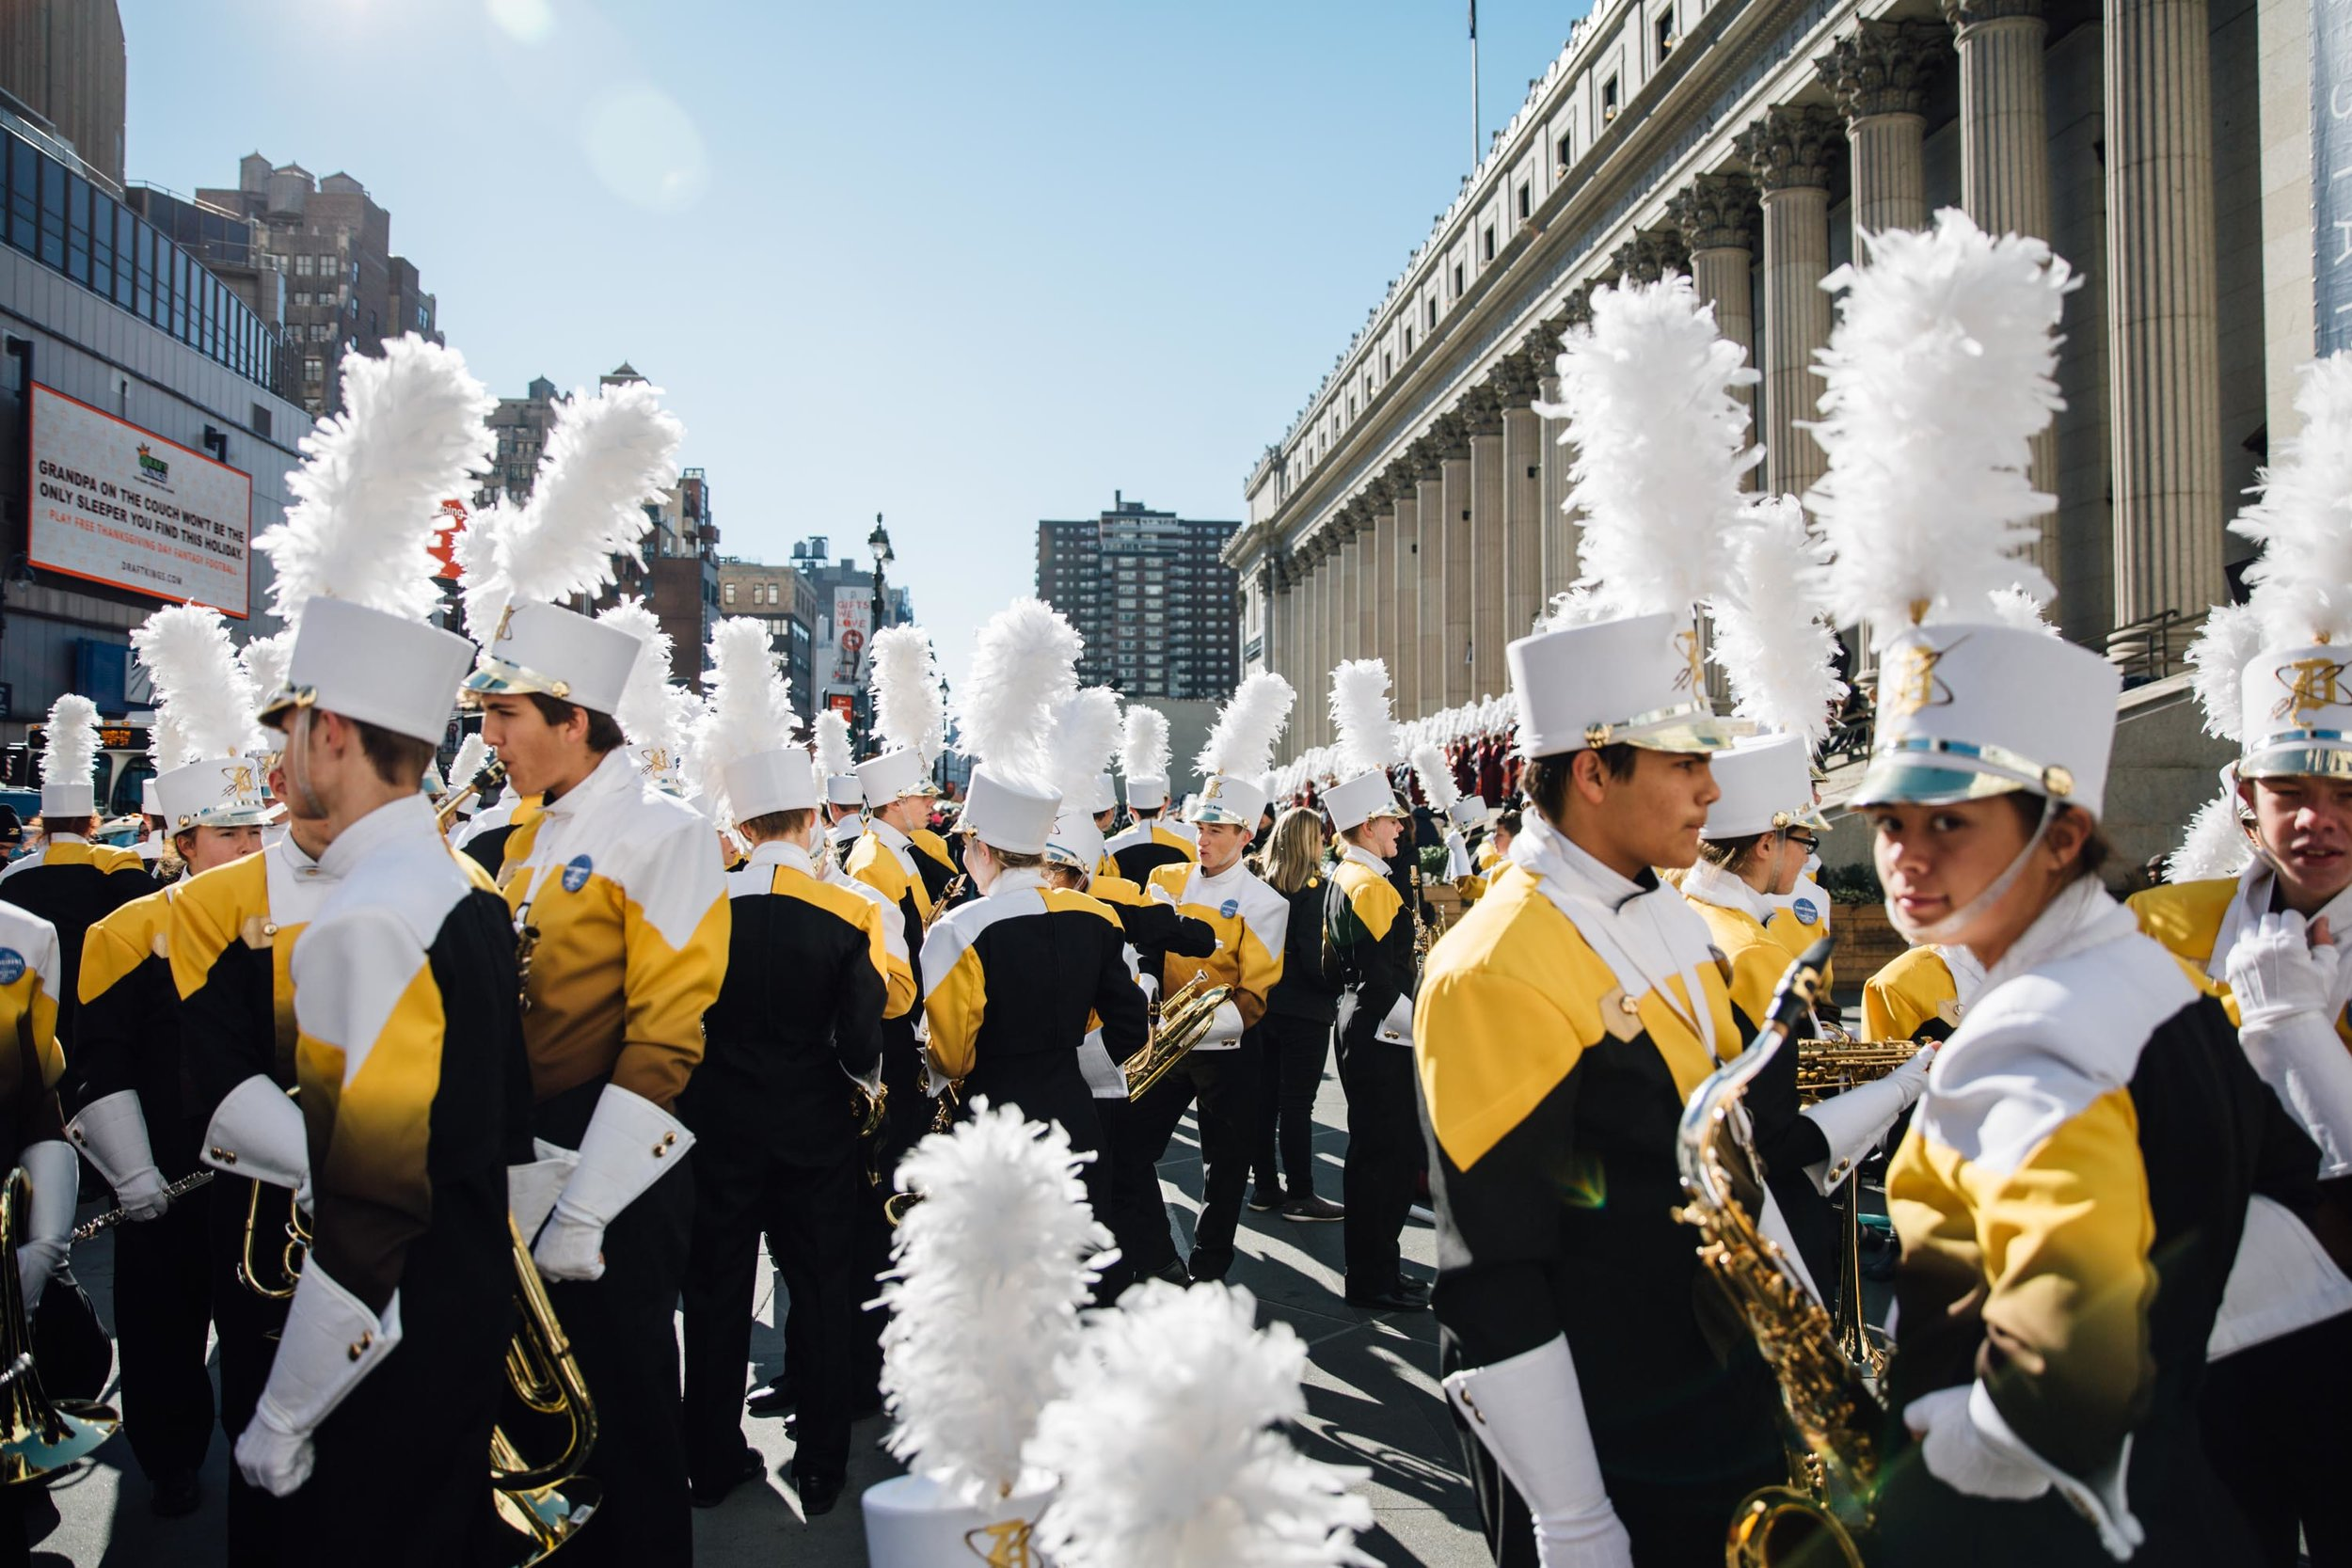 A marching band in the Macy's Thanksgiving Day Parade congregate outside the James A. Farley Post Office Building, New York, USA. 23rd Nov 2017.